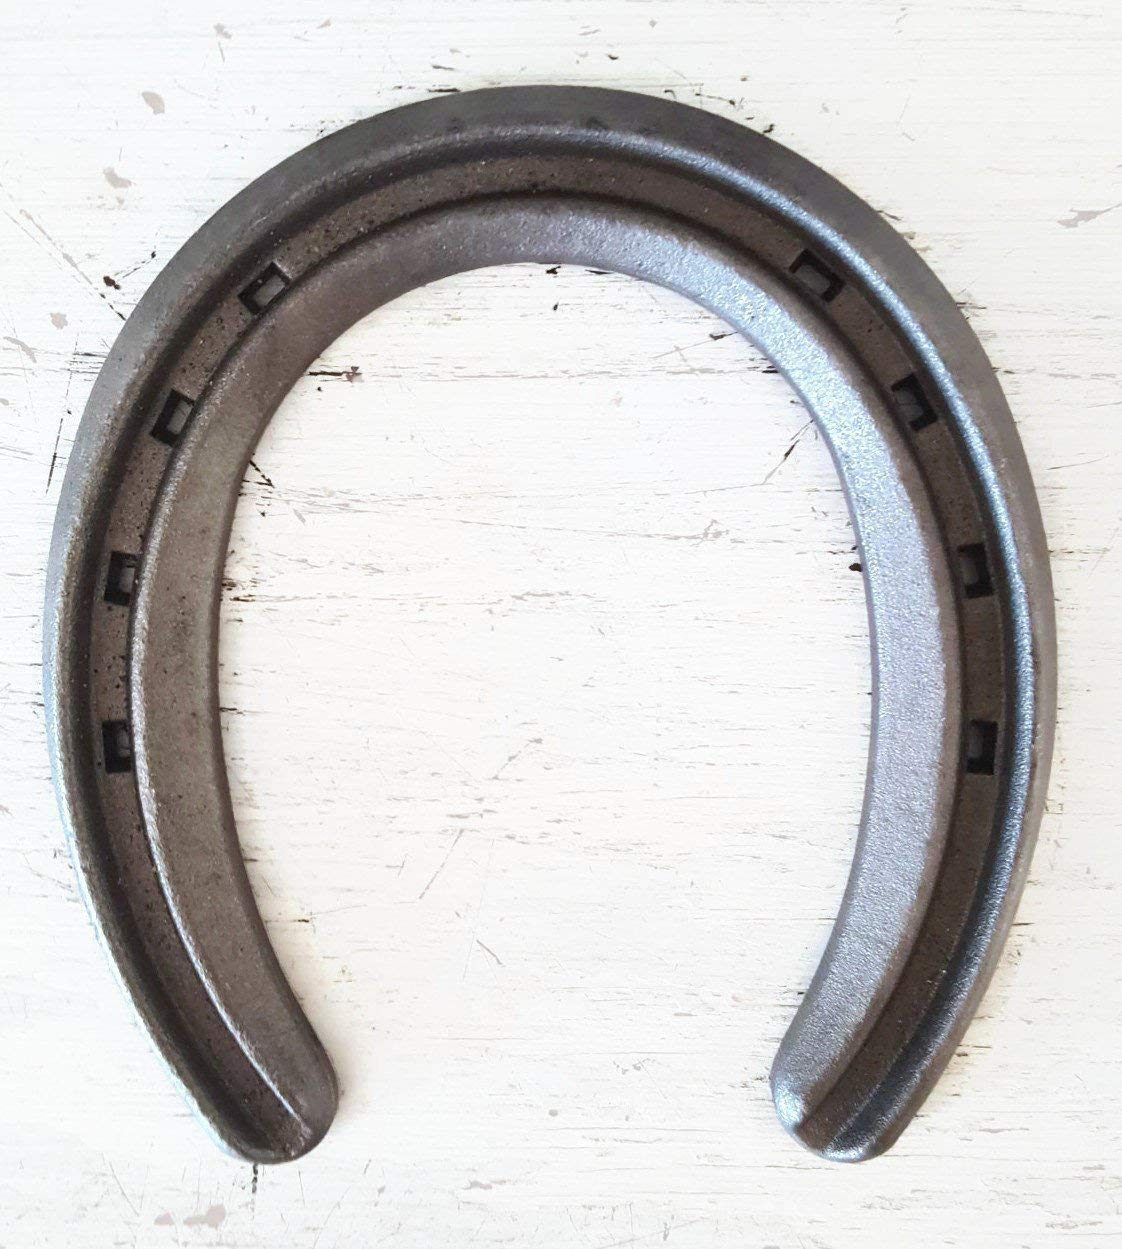 New Steel Horseshoes Lite Rim Size 00Sand Blasted- Heritage Forge 2 shoes